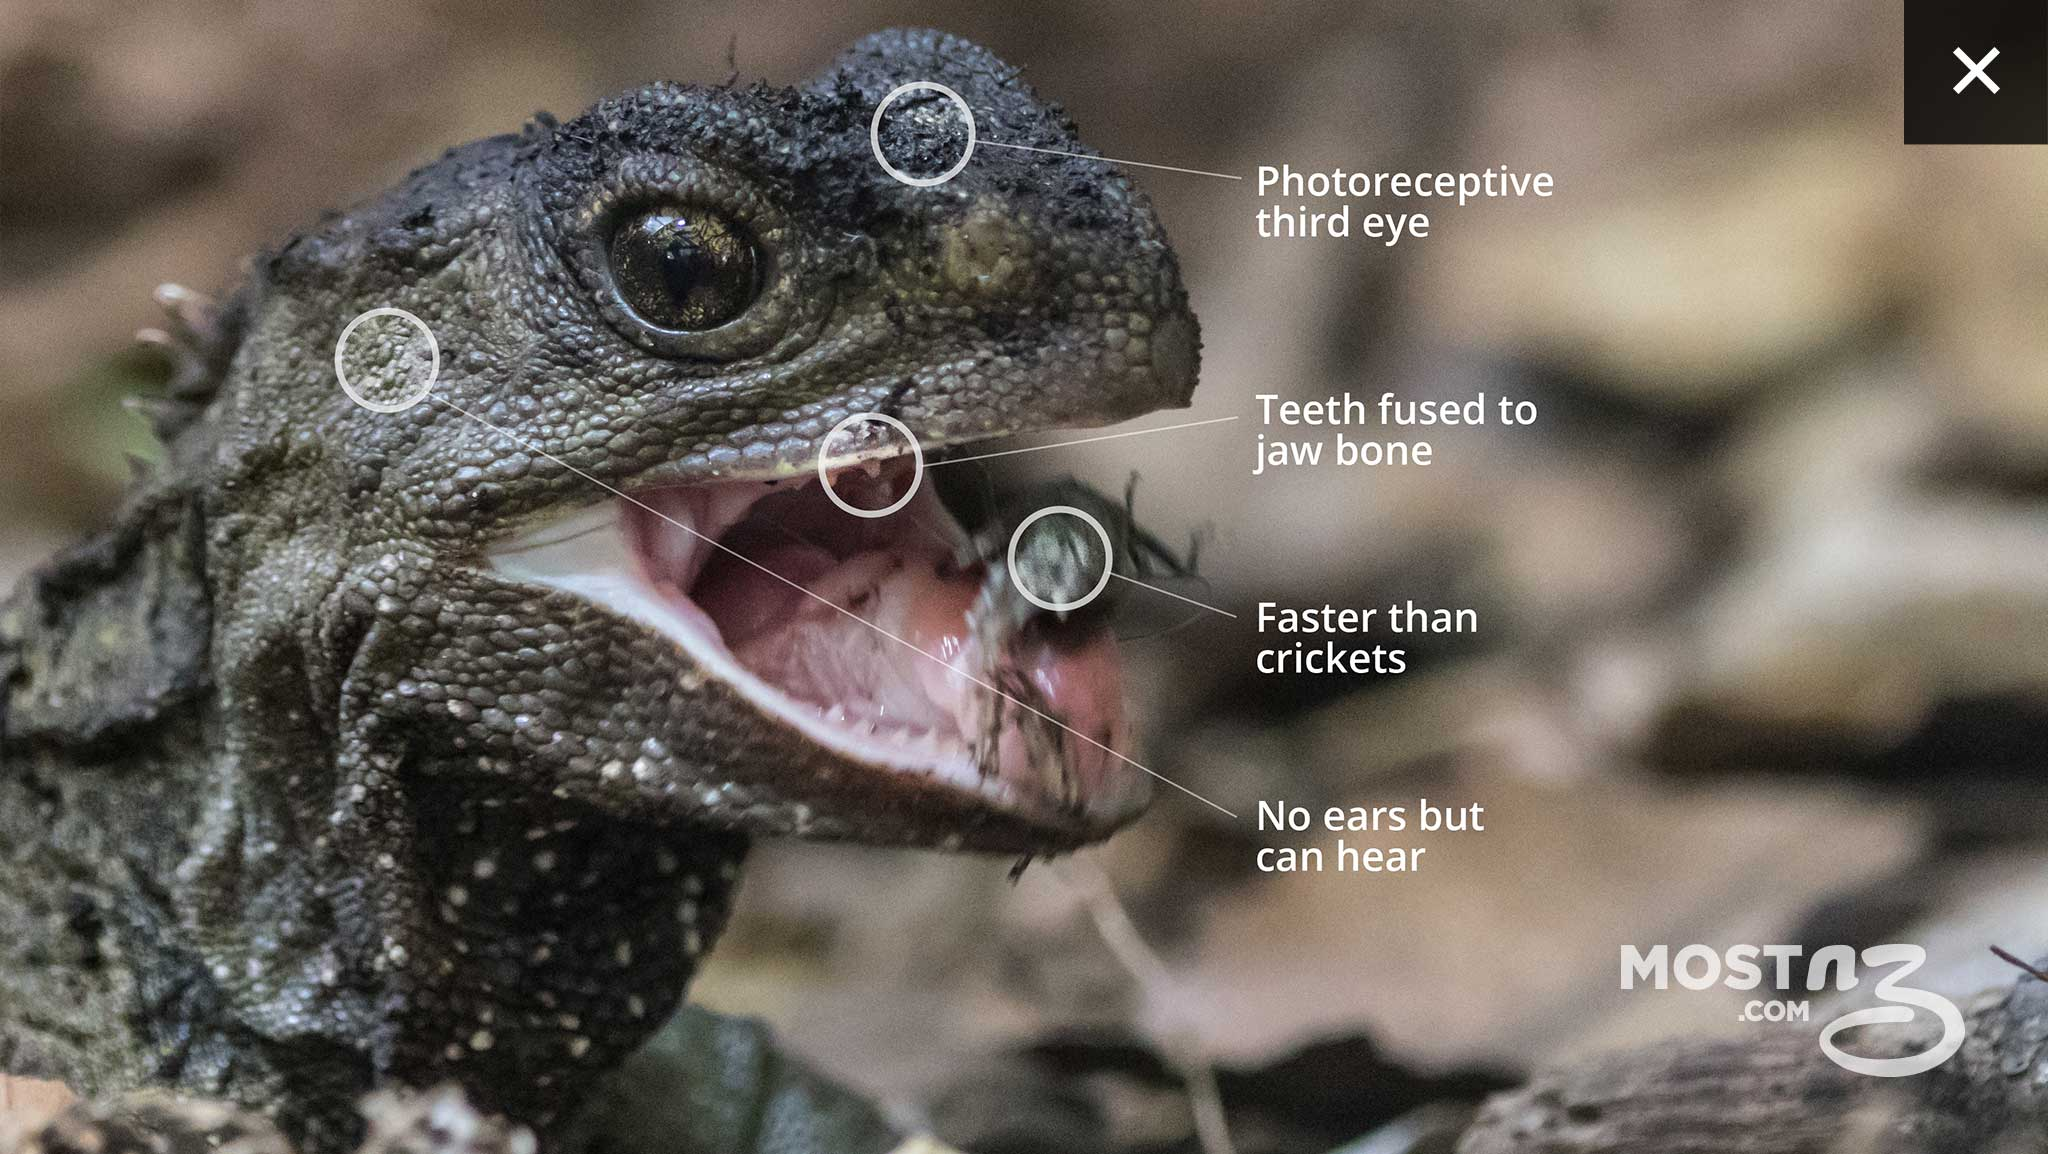 Tuatara Are Even More Unusual Because They Have A Pronounced Photoreceptive Third Eye